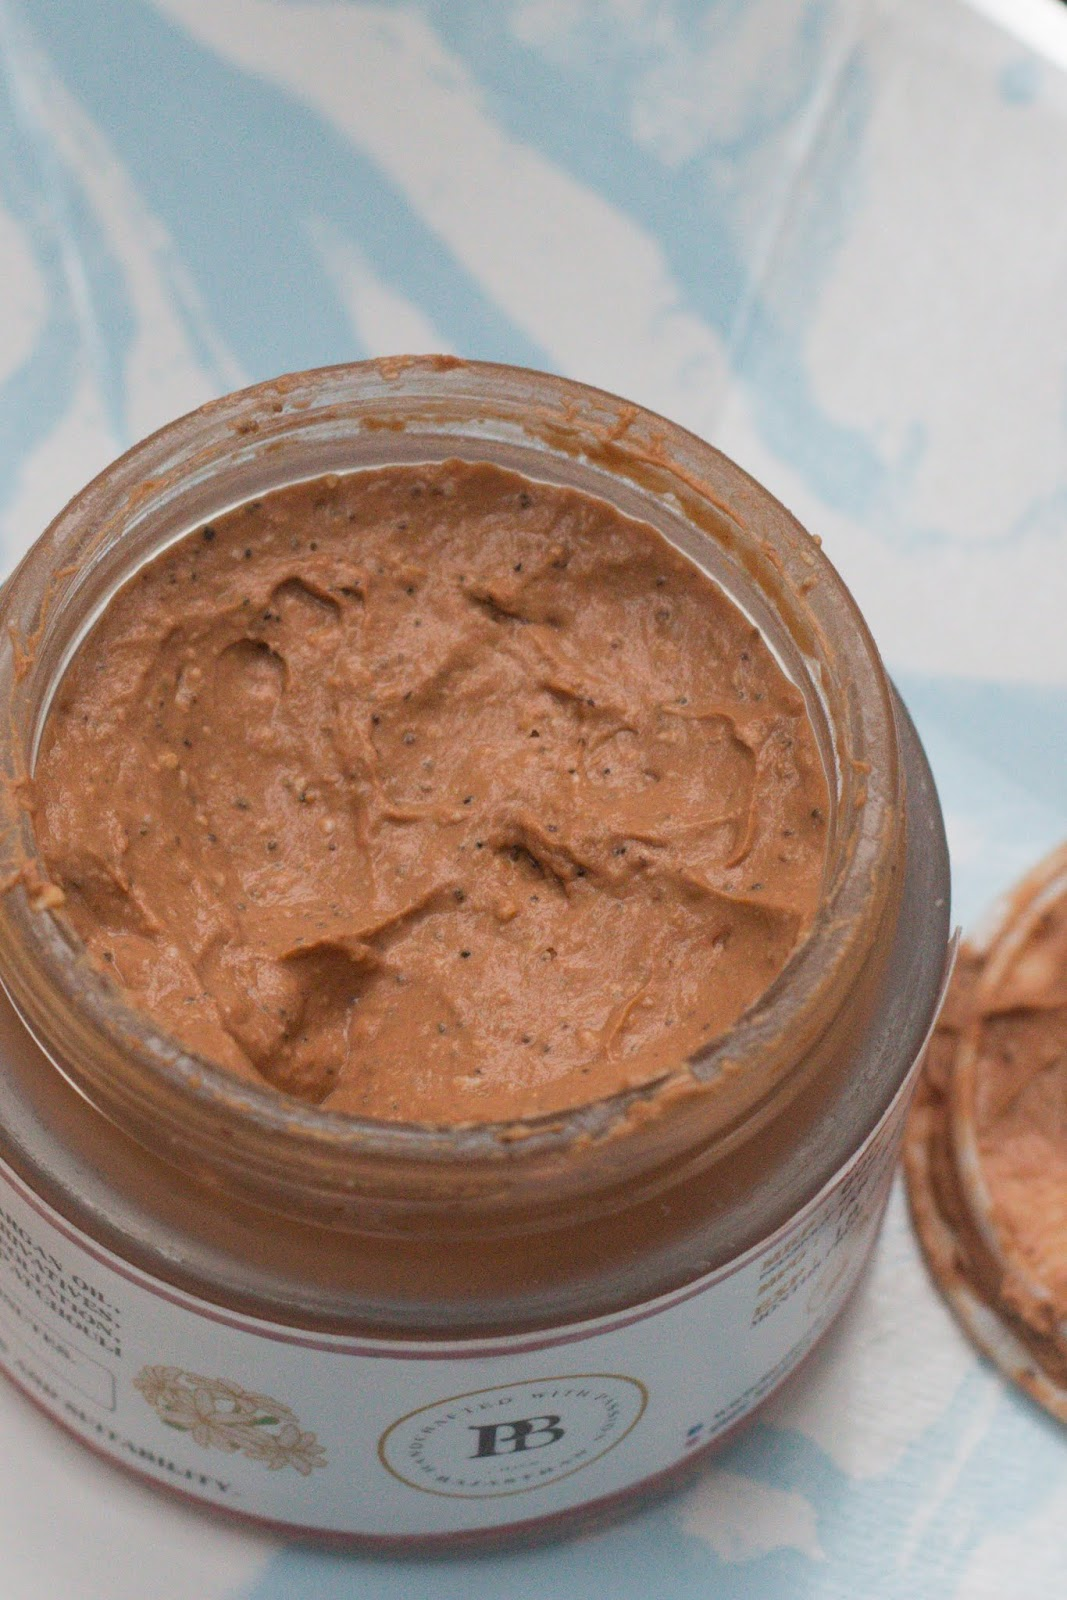 Moroccon Clay Mask Texture